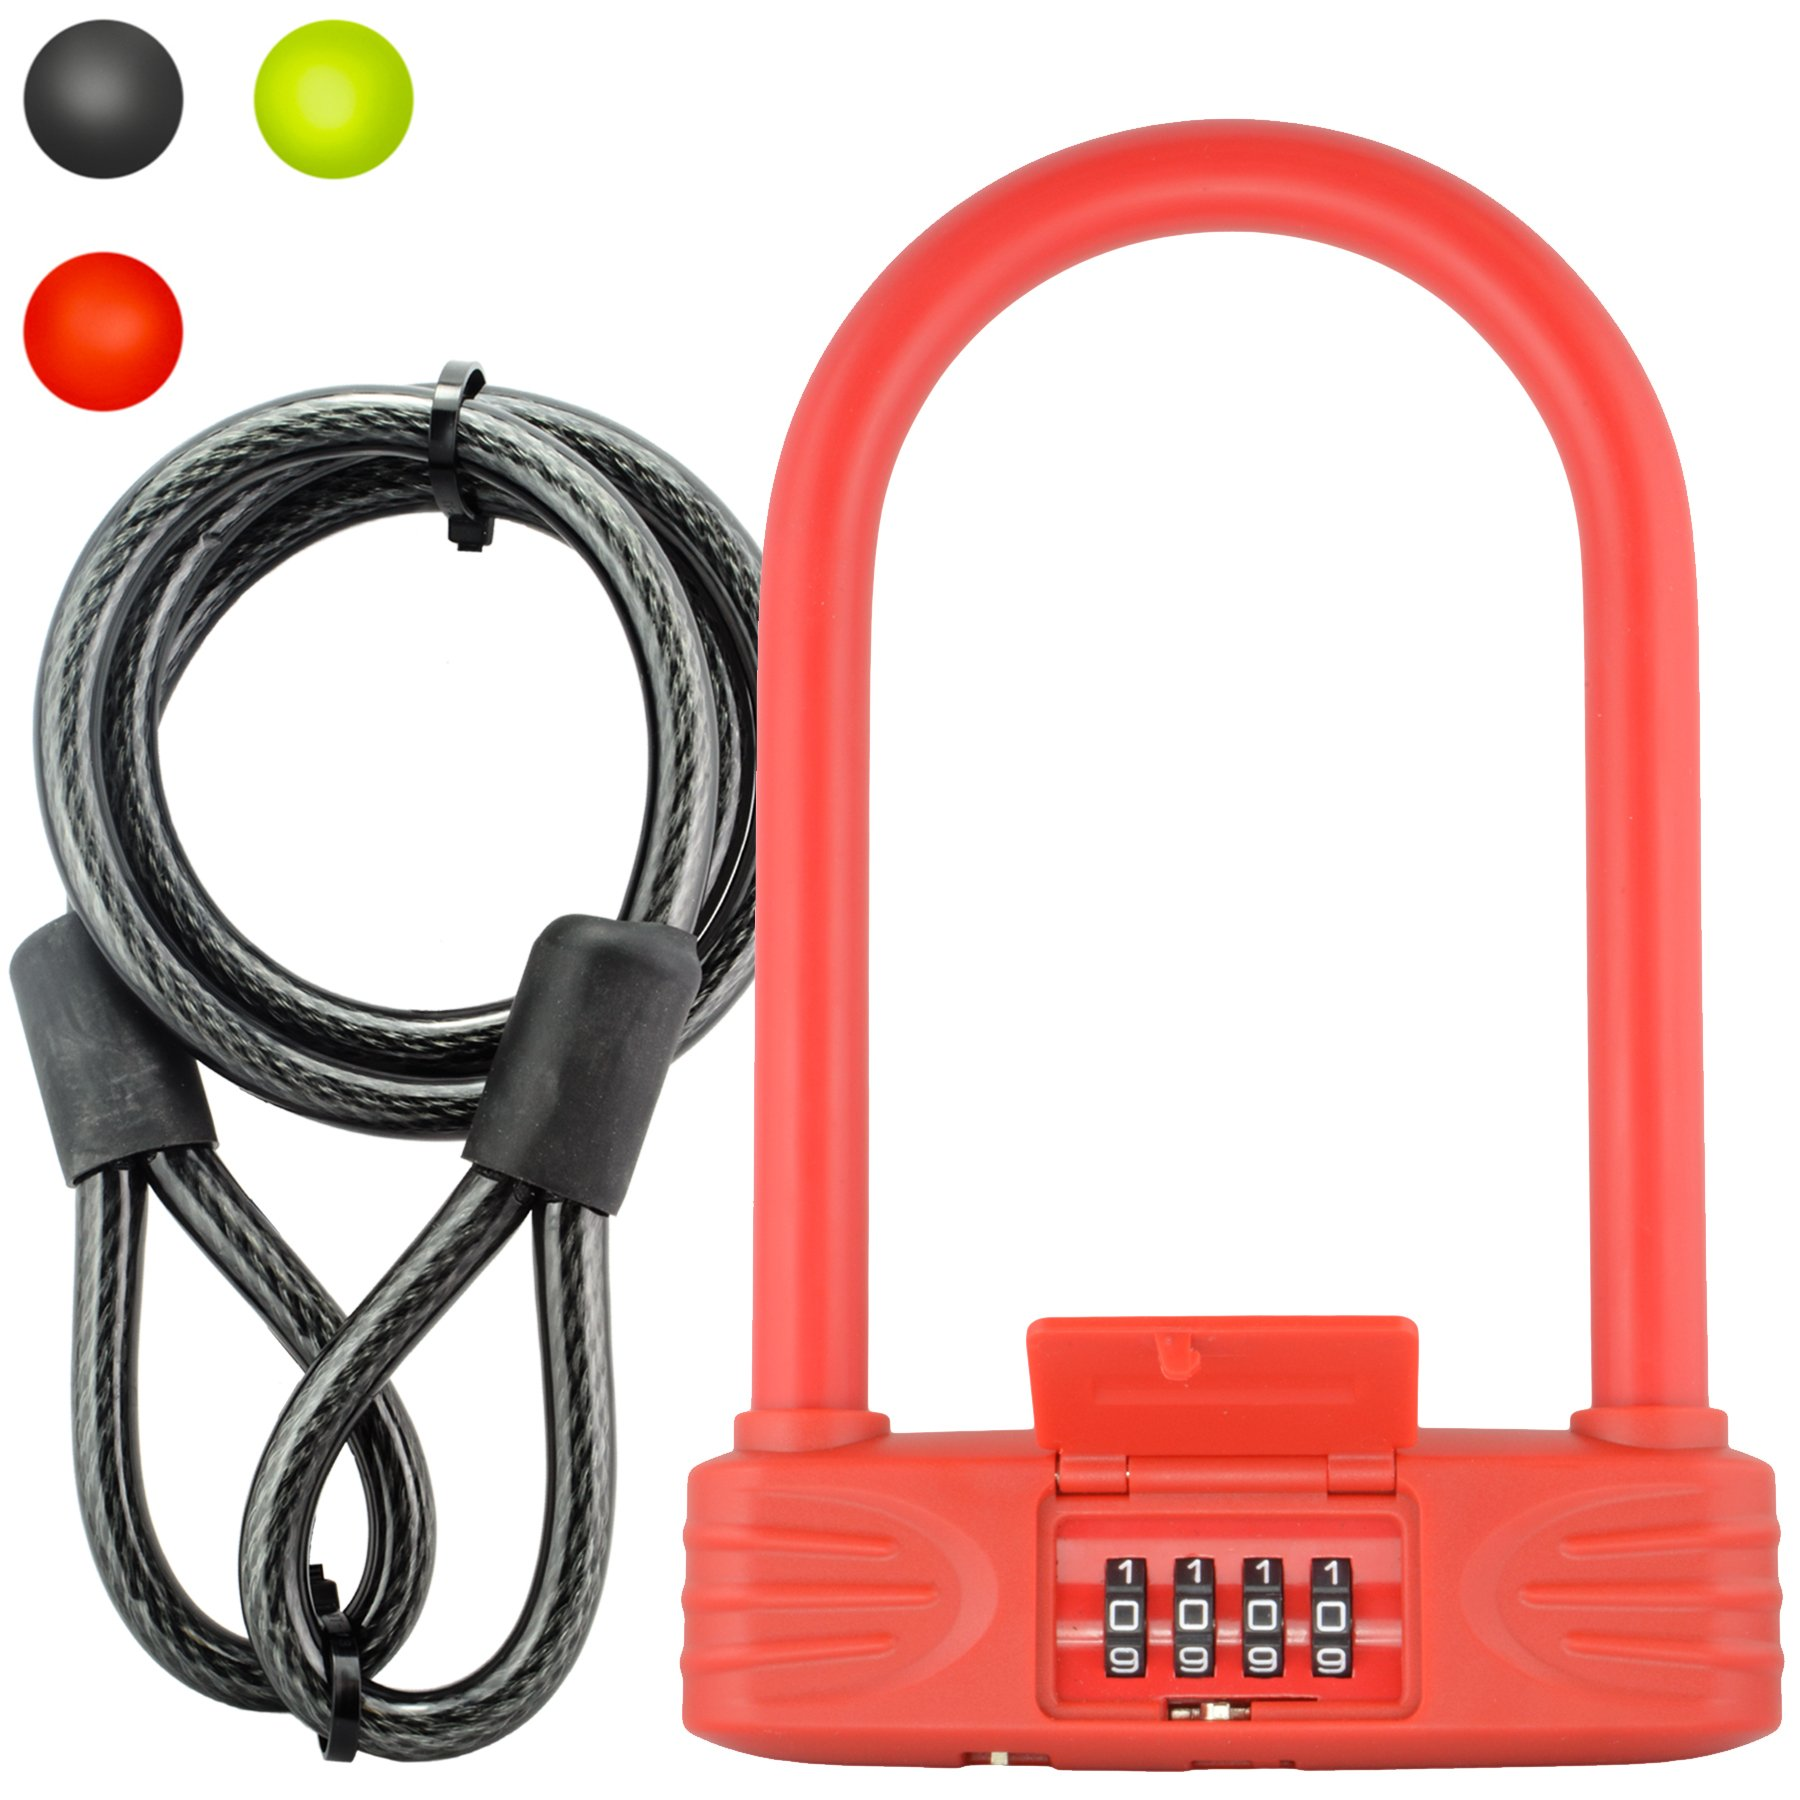 Lumintrail 16mm Heavy Duty 4-Digit Bicycle Bike Combination U-Lock with 4 ft Cable - Assorted Colors (Red) by Lumintrail